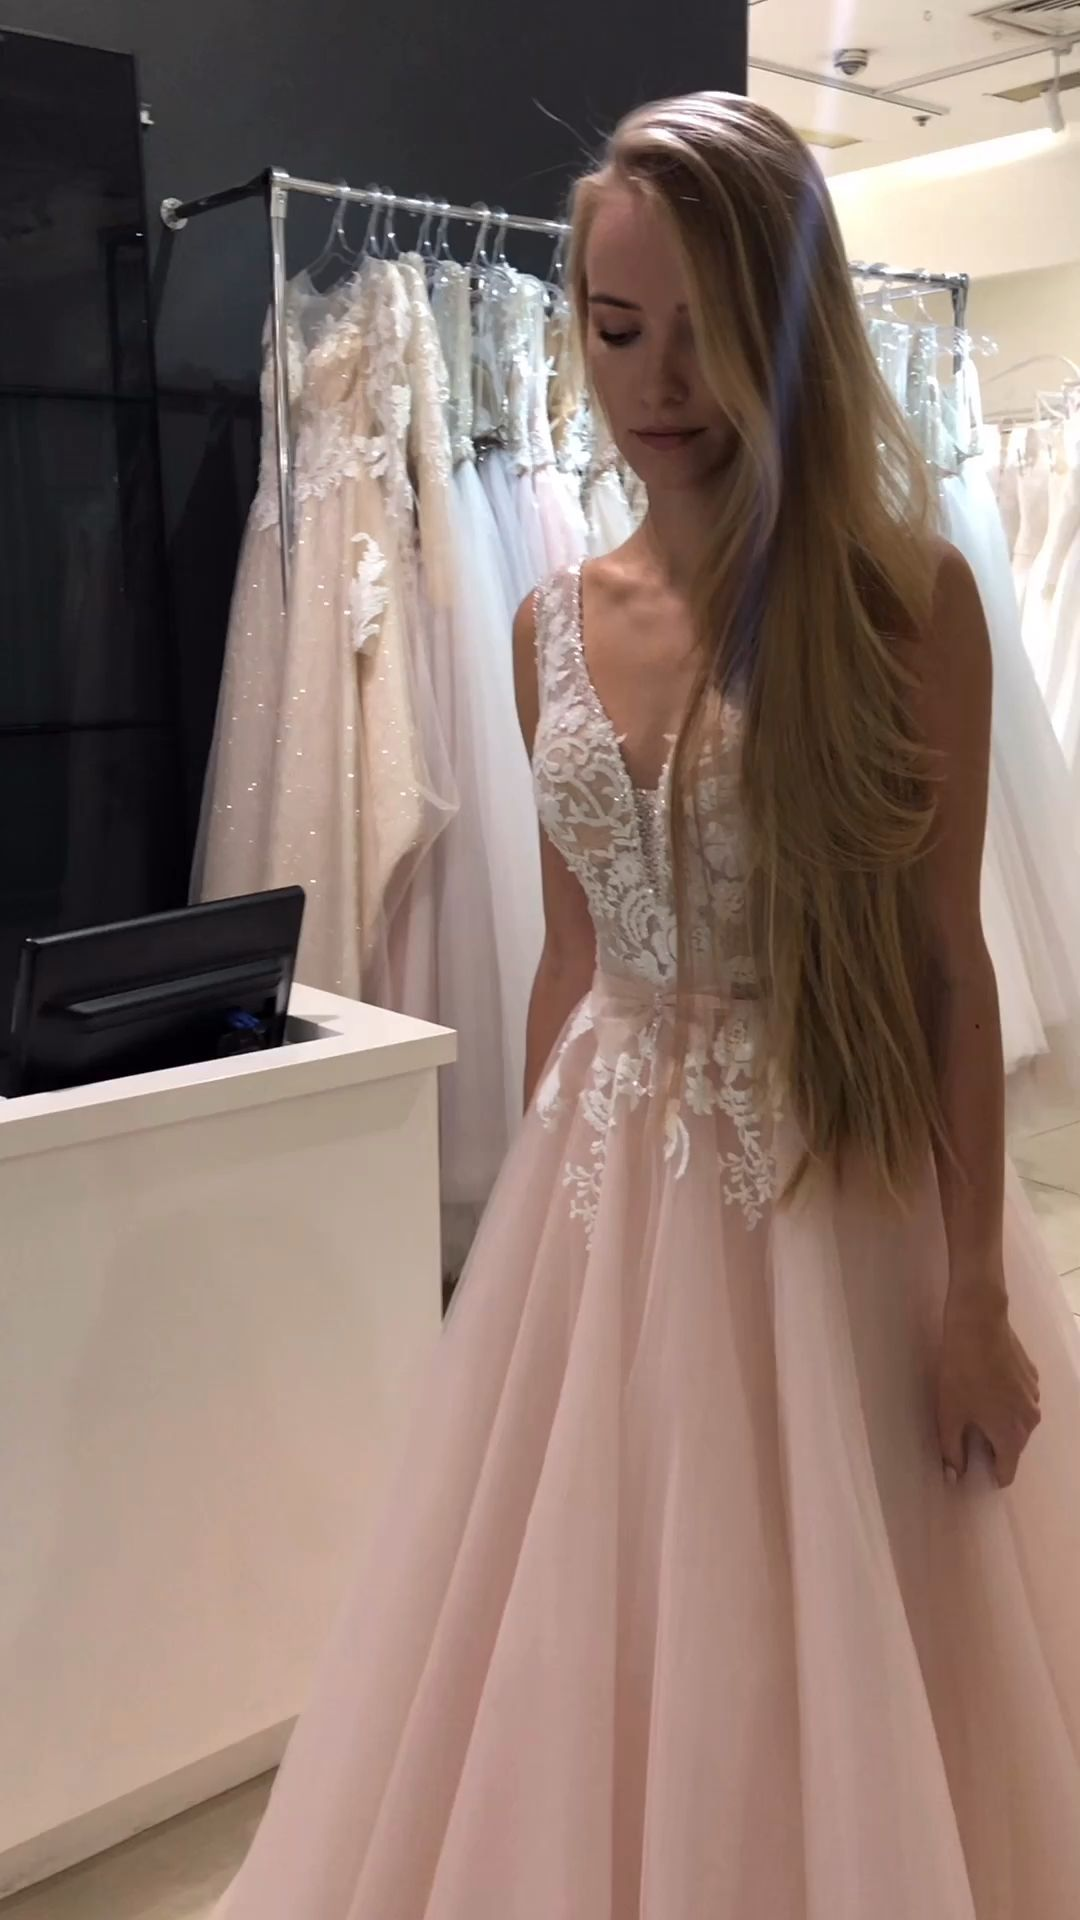 Wedding Dresses Luxury Wedding Dresses T Length Formal Dresses Cheap P Queewwn,Pink Dresses For Weddings